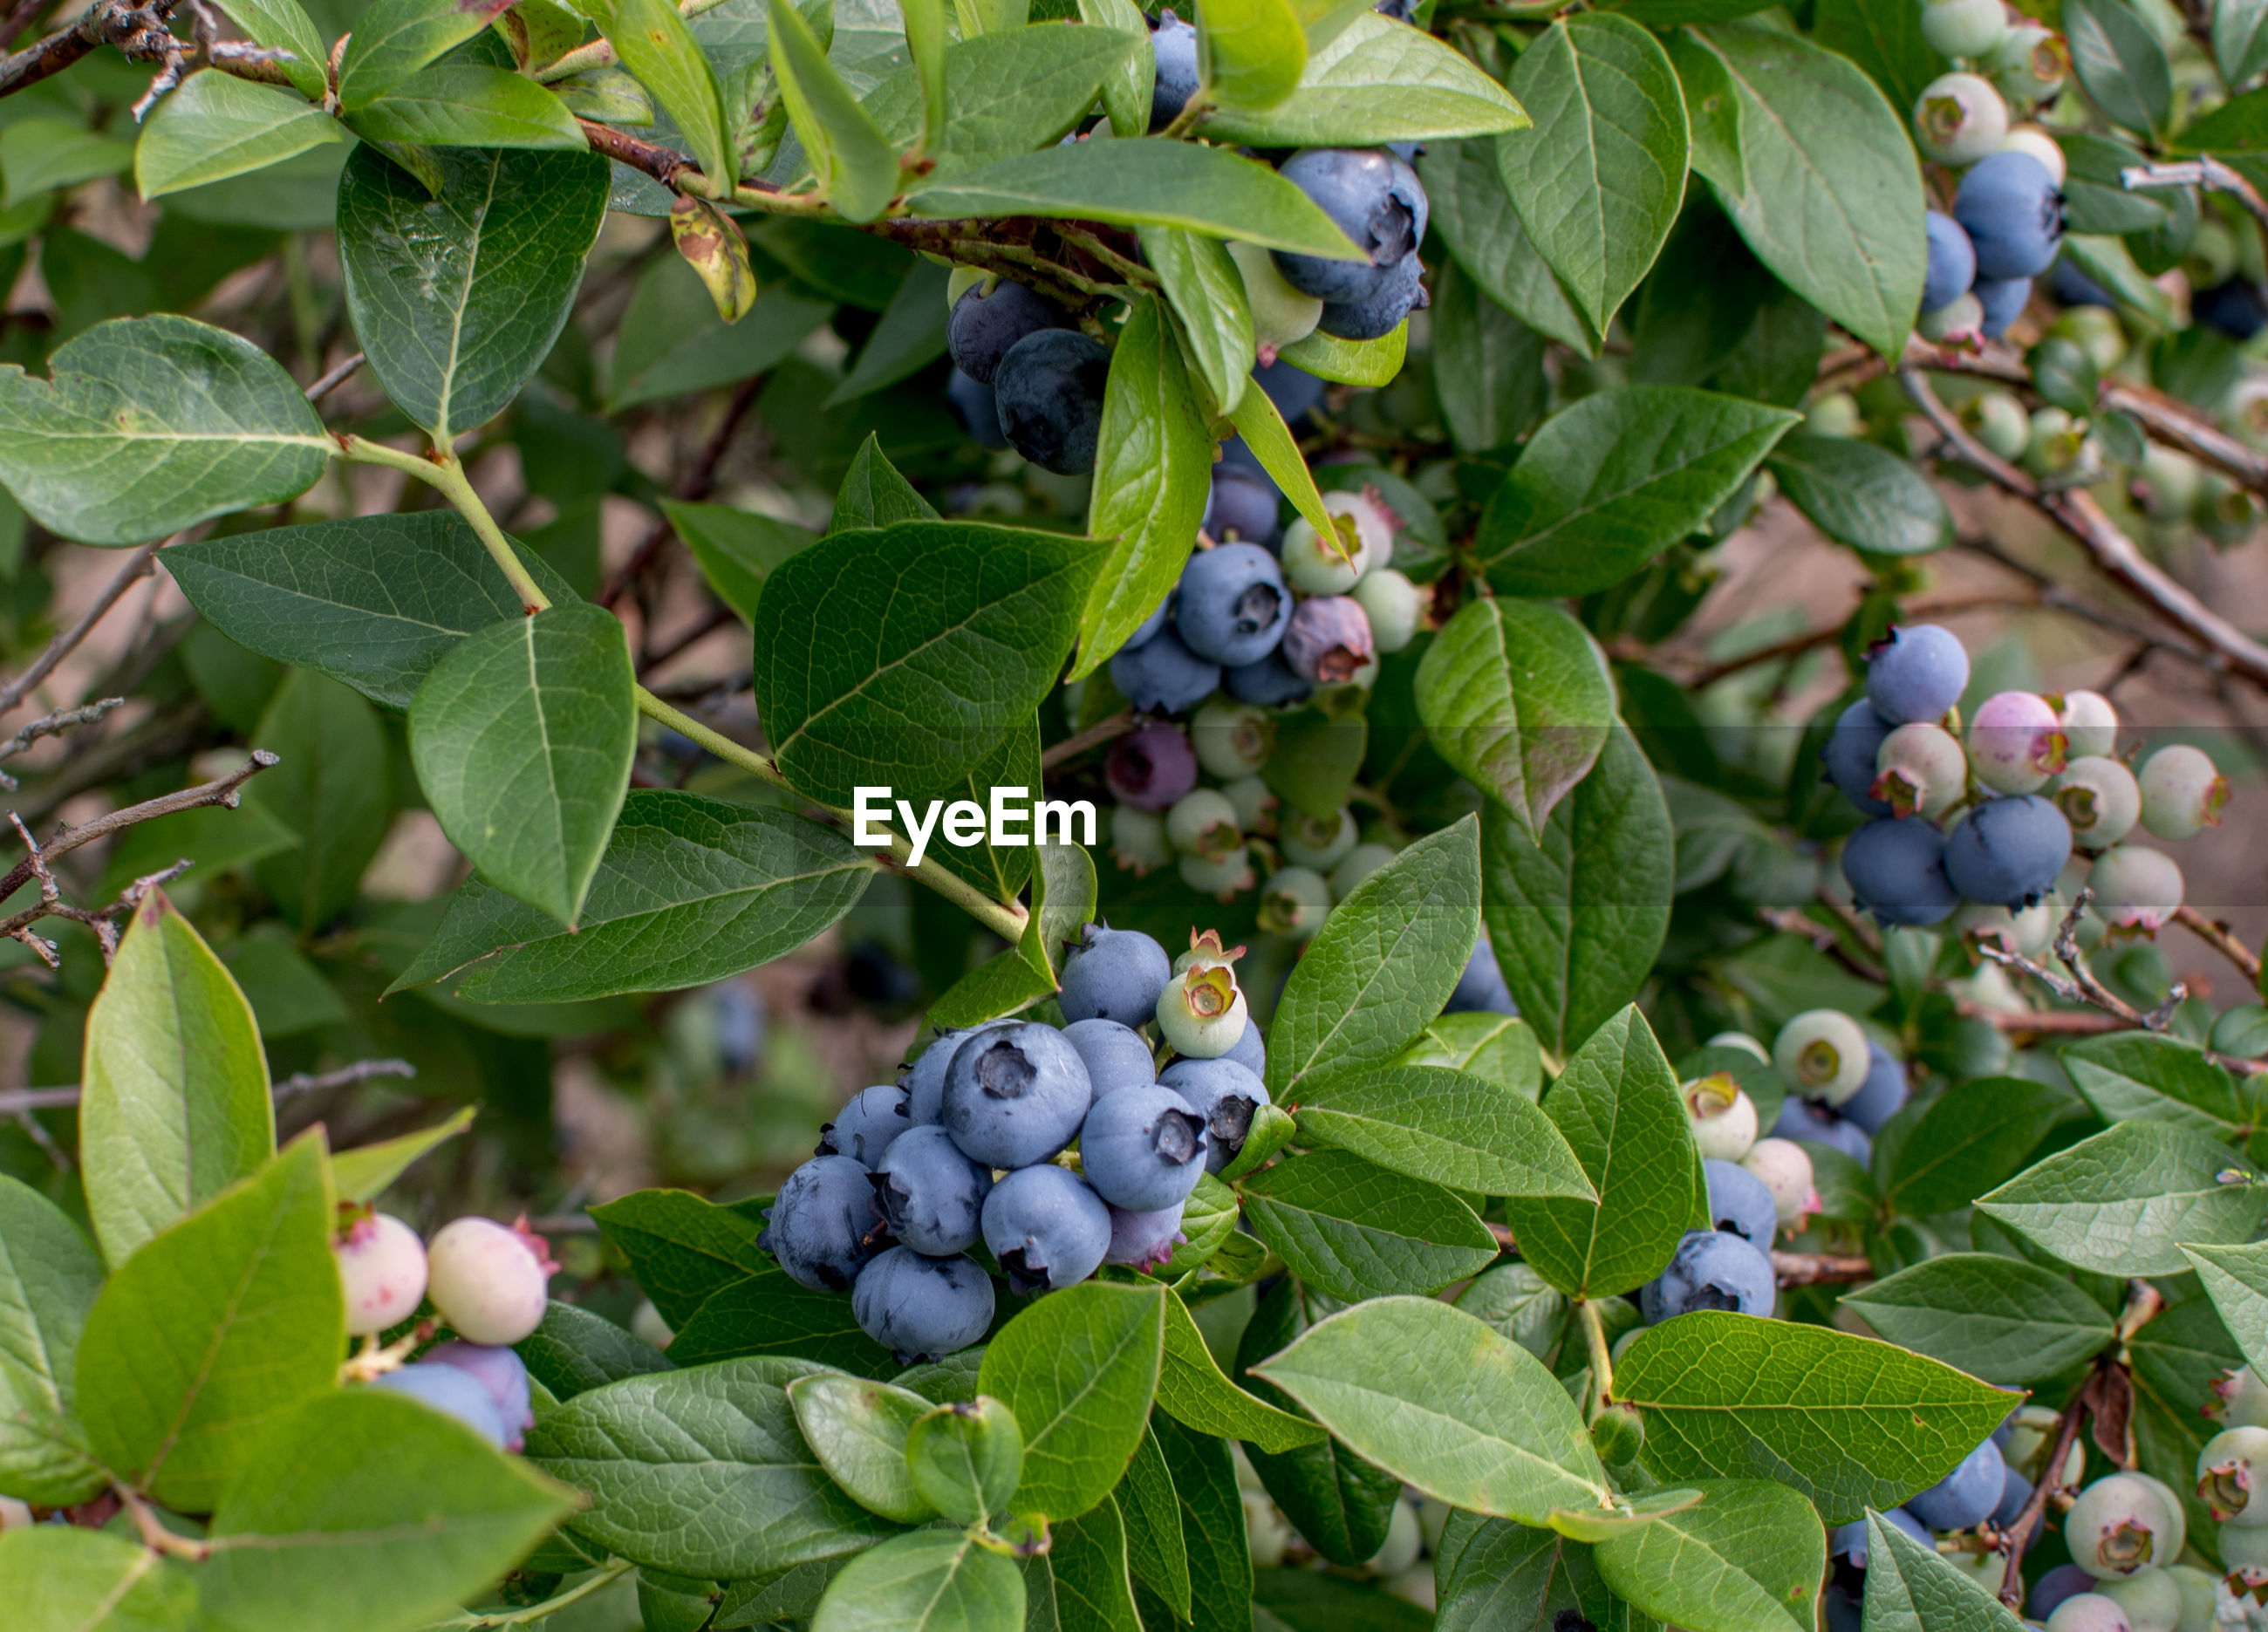 purple blueberries, grow by the thousands on bushes in this rural michigan usa blueberry farm